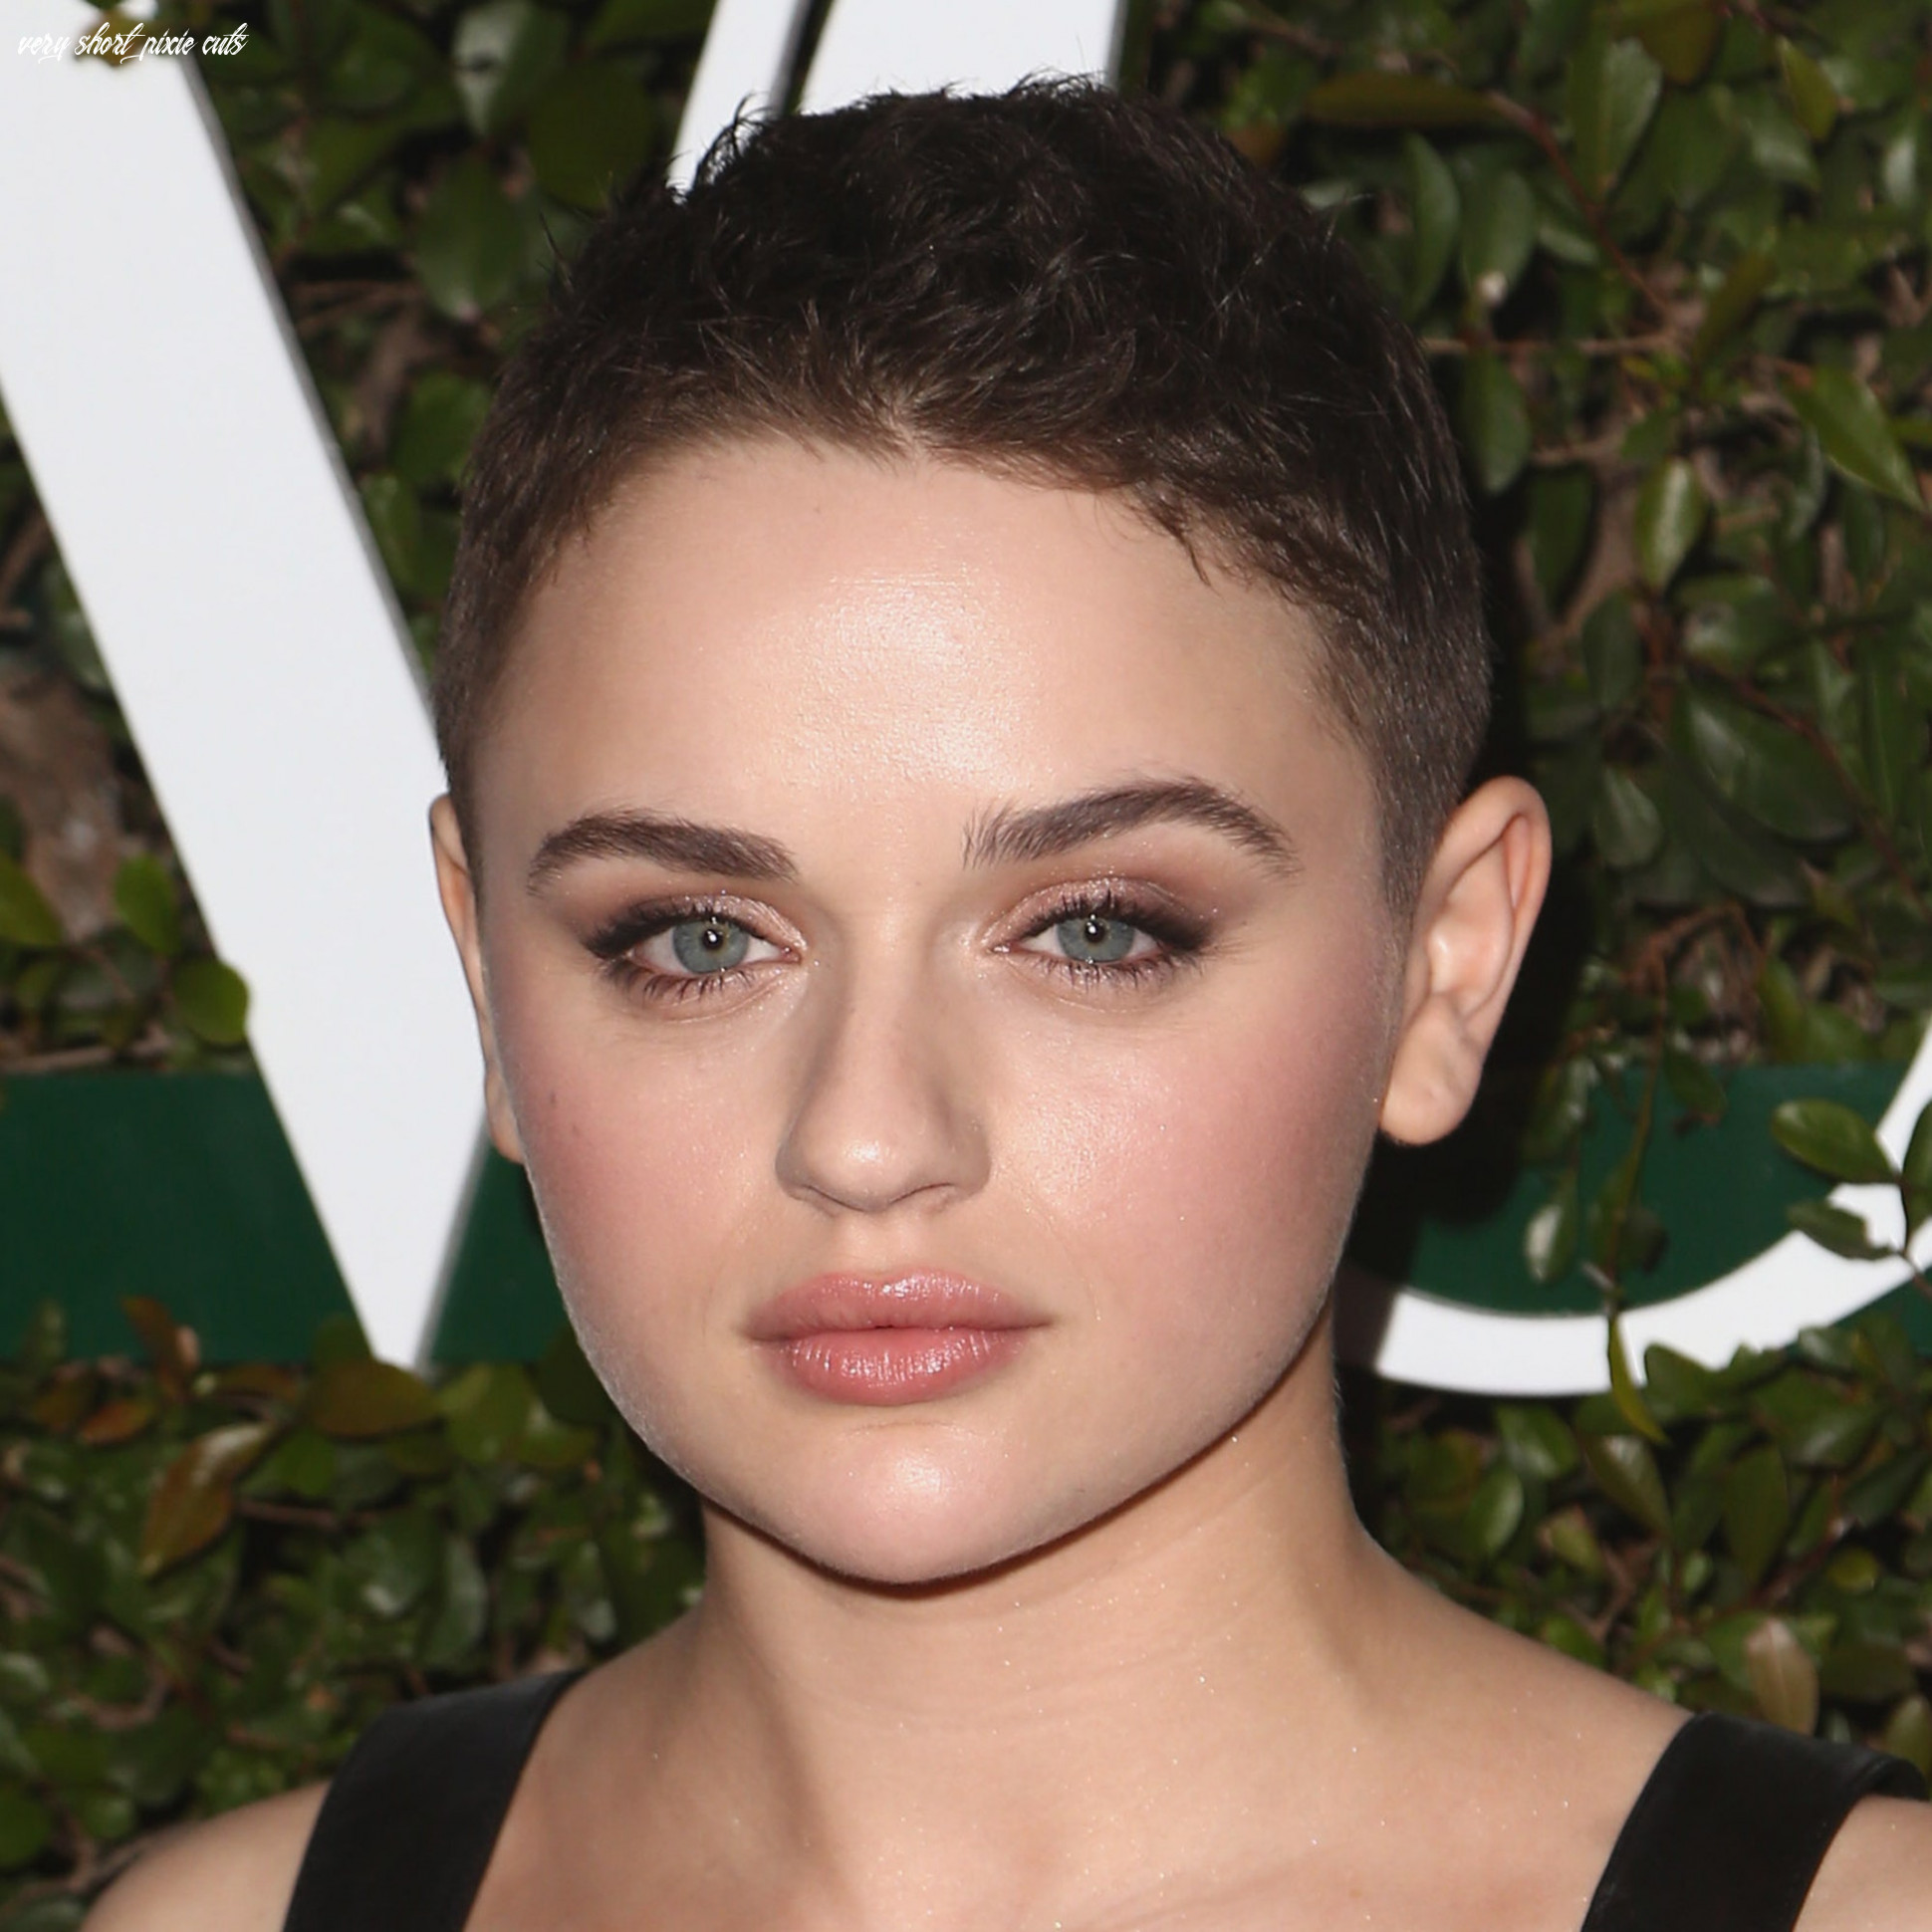 12 best pixie cuts of 2012 celebrity pixie hairstyle ideas | allure very short pixie cuts